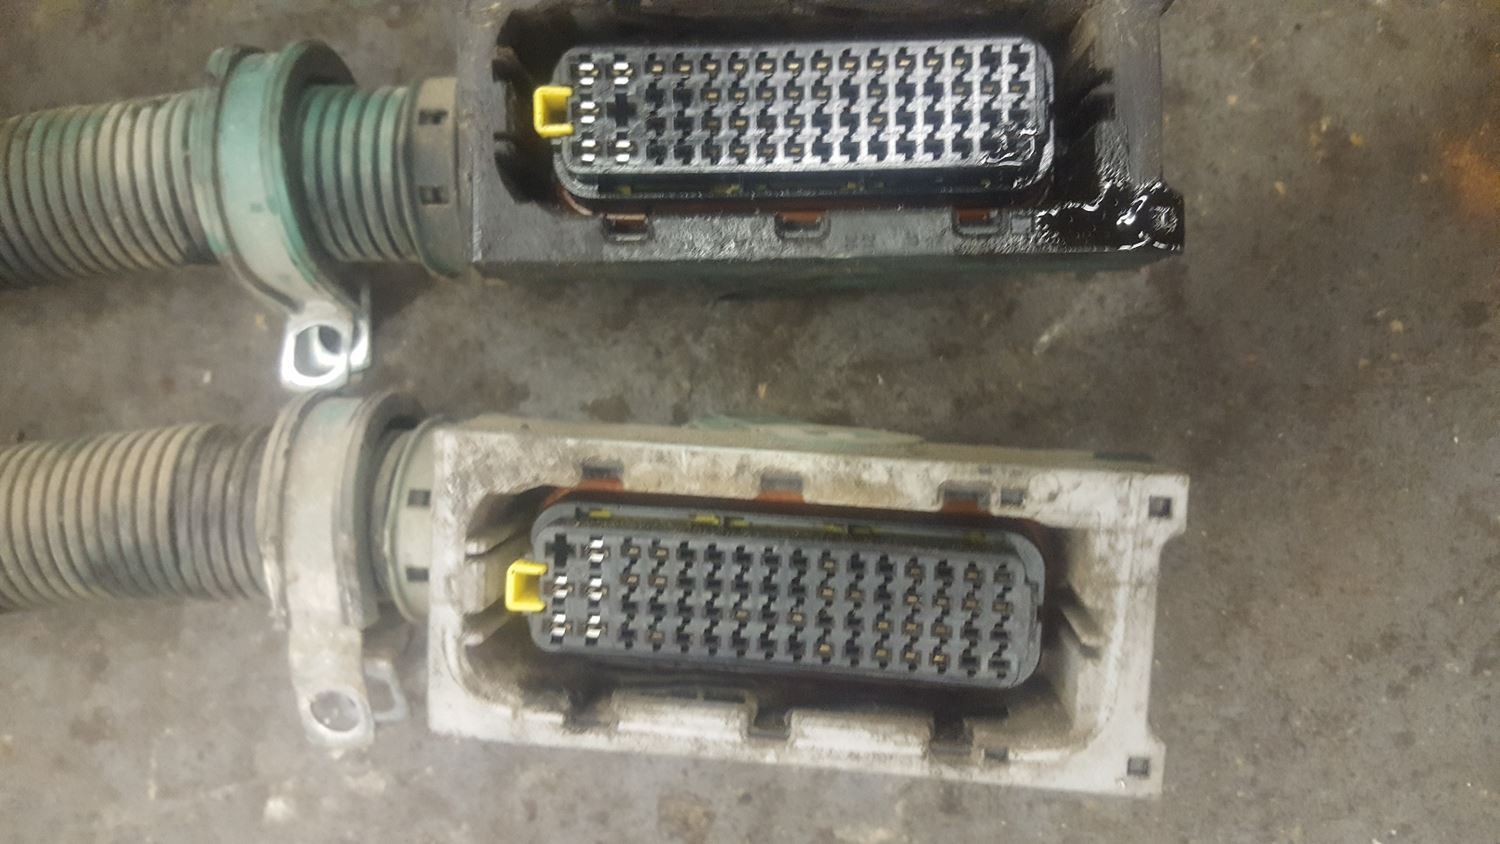 Volvo D16 (Stock #4460048236) | Wiring Harnesses | TPI on dodge wiring harness, bass tracker wiring harness, lifan wiring harness, john deere diesel wiring harness, perkins wiring harness, winnebago wiring harness, case wiring harness, astro van wiring harness, jaguar wiring harness, chevy wiring harness, lexus wiring harness, maserati wiring harness, navistar wiring harness, yamaha wiring harness, hyundai wiring harness, mitsubishi wiring harness, piaggio wiring harness, porsche wiring harness, detroit diesel wiring harness, bbc wiring harness,